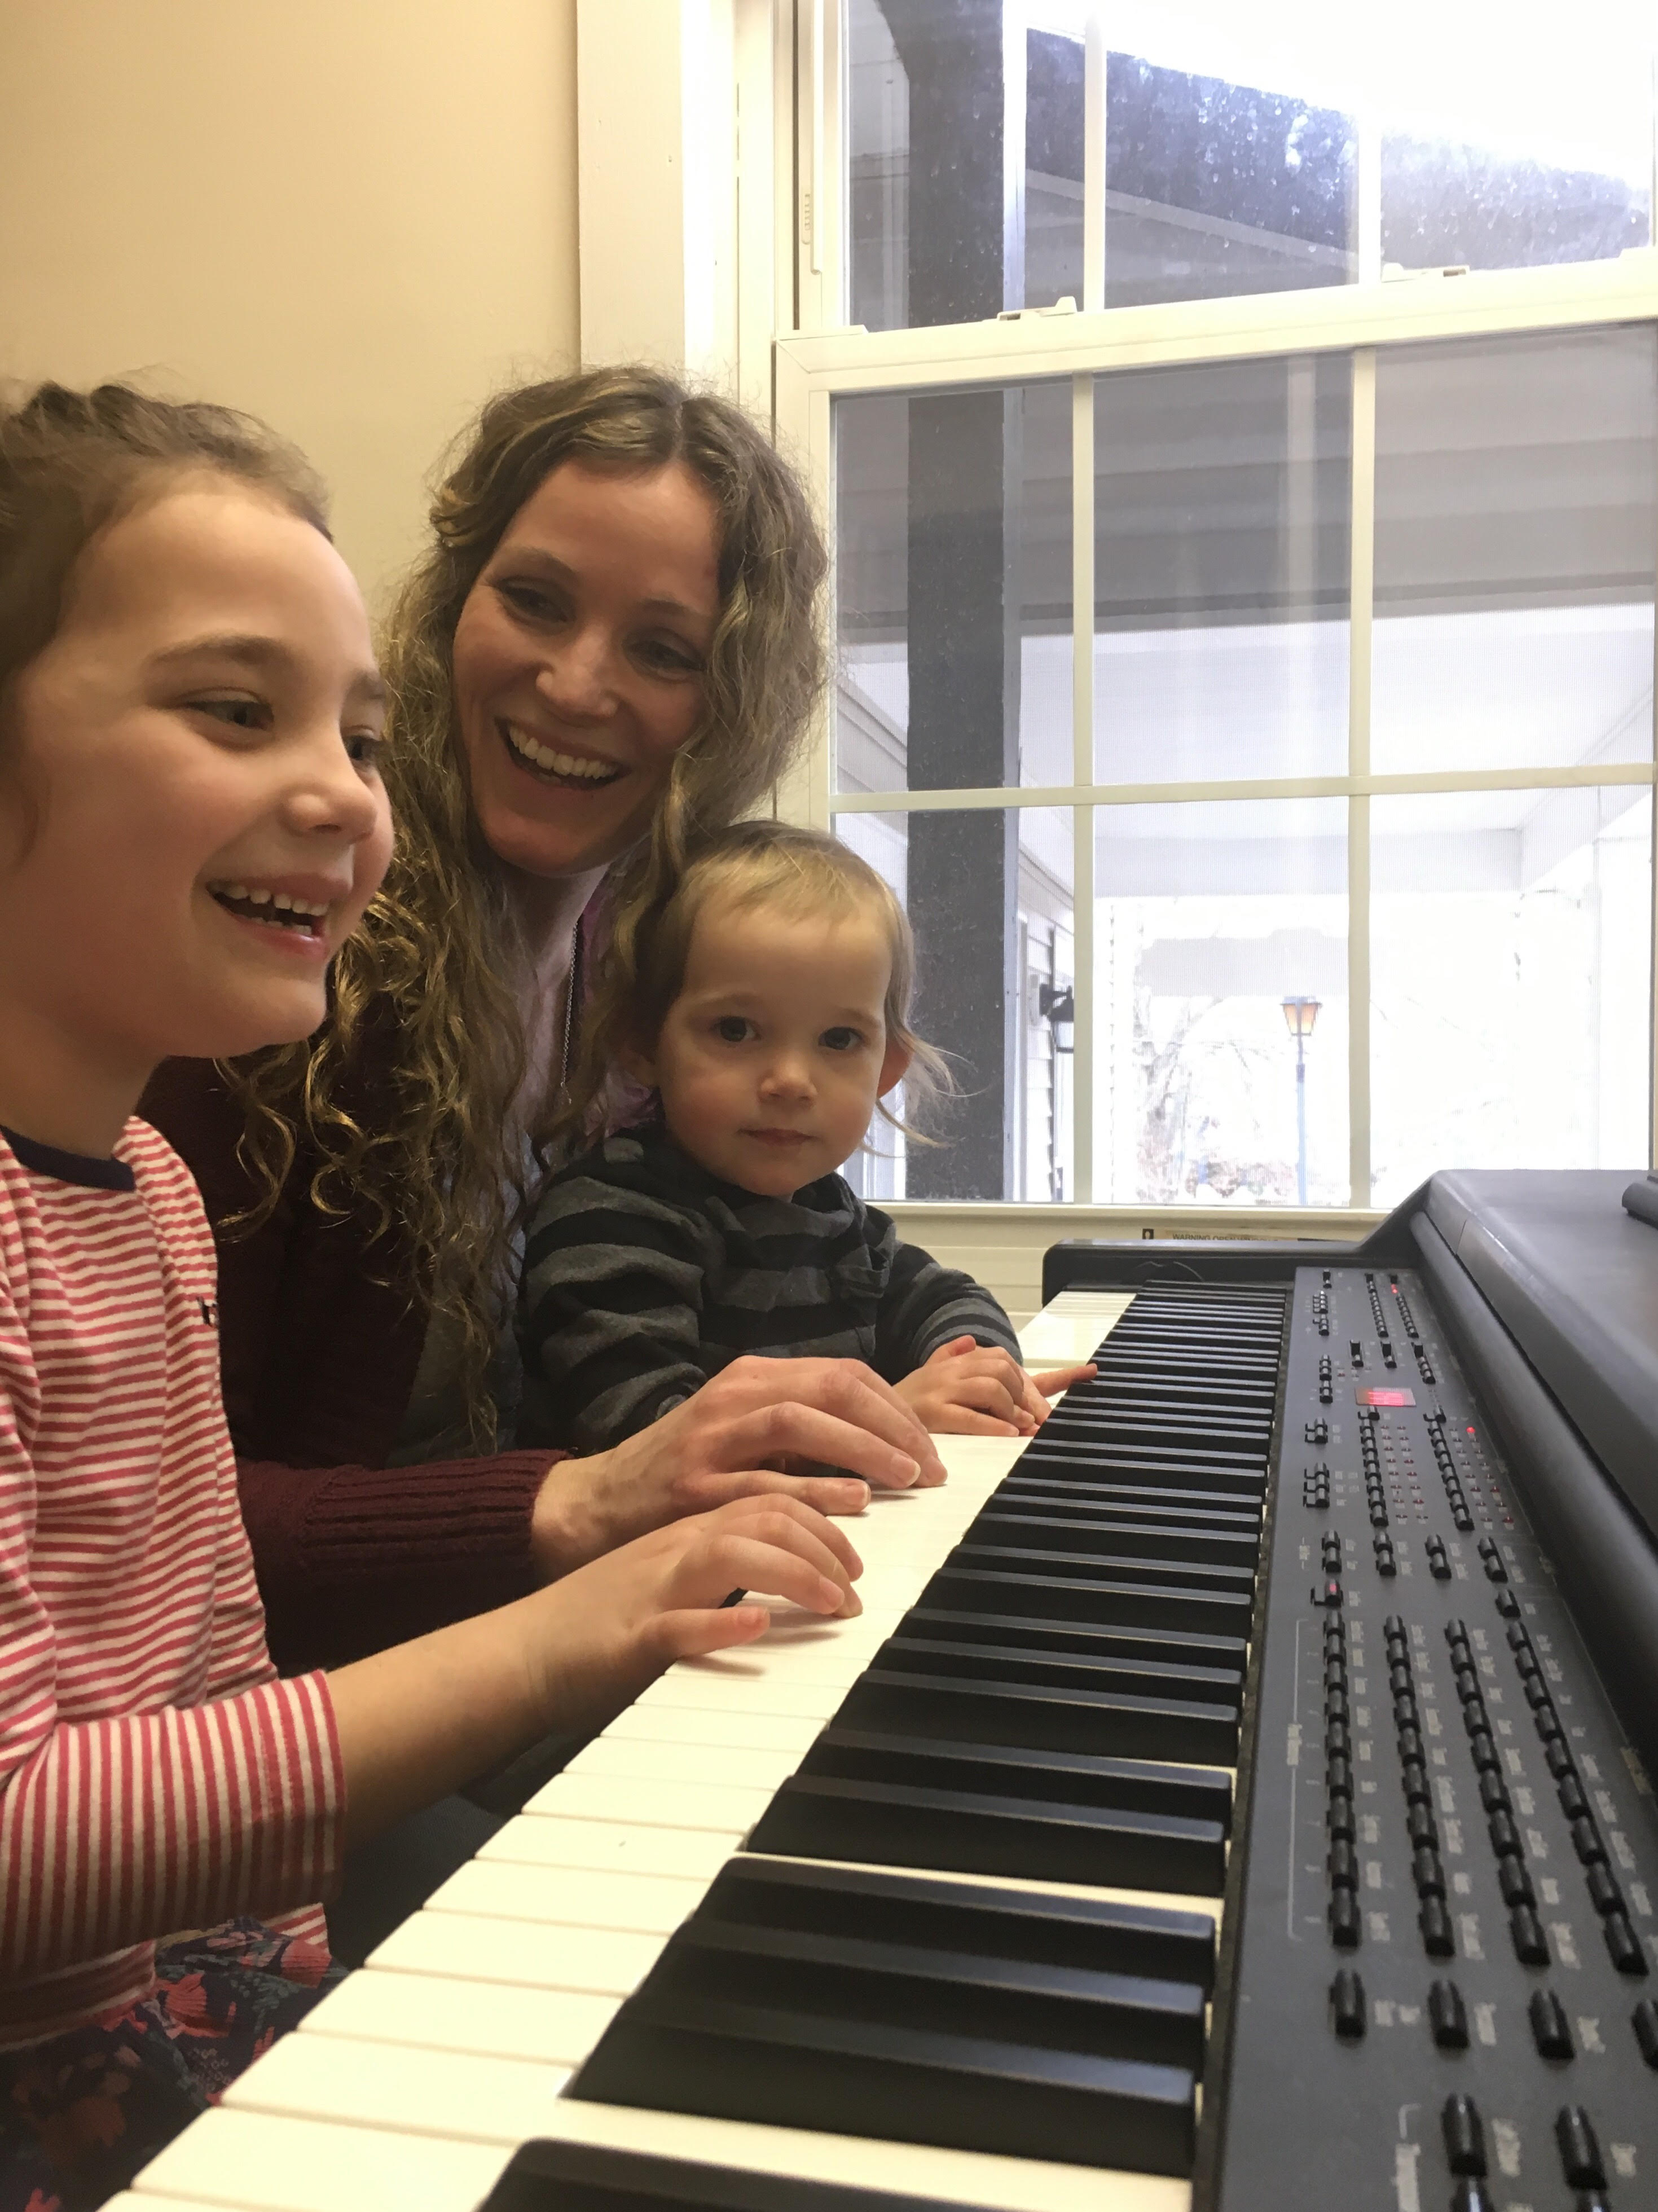 mother and two children playing piano